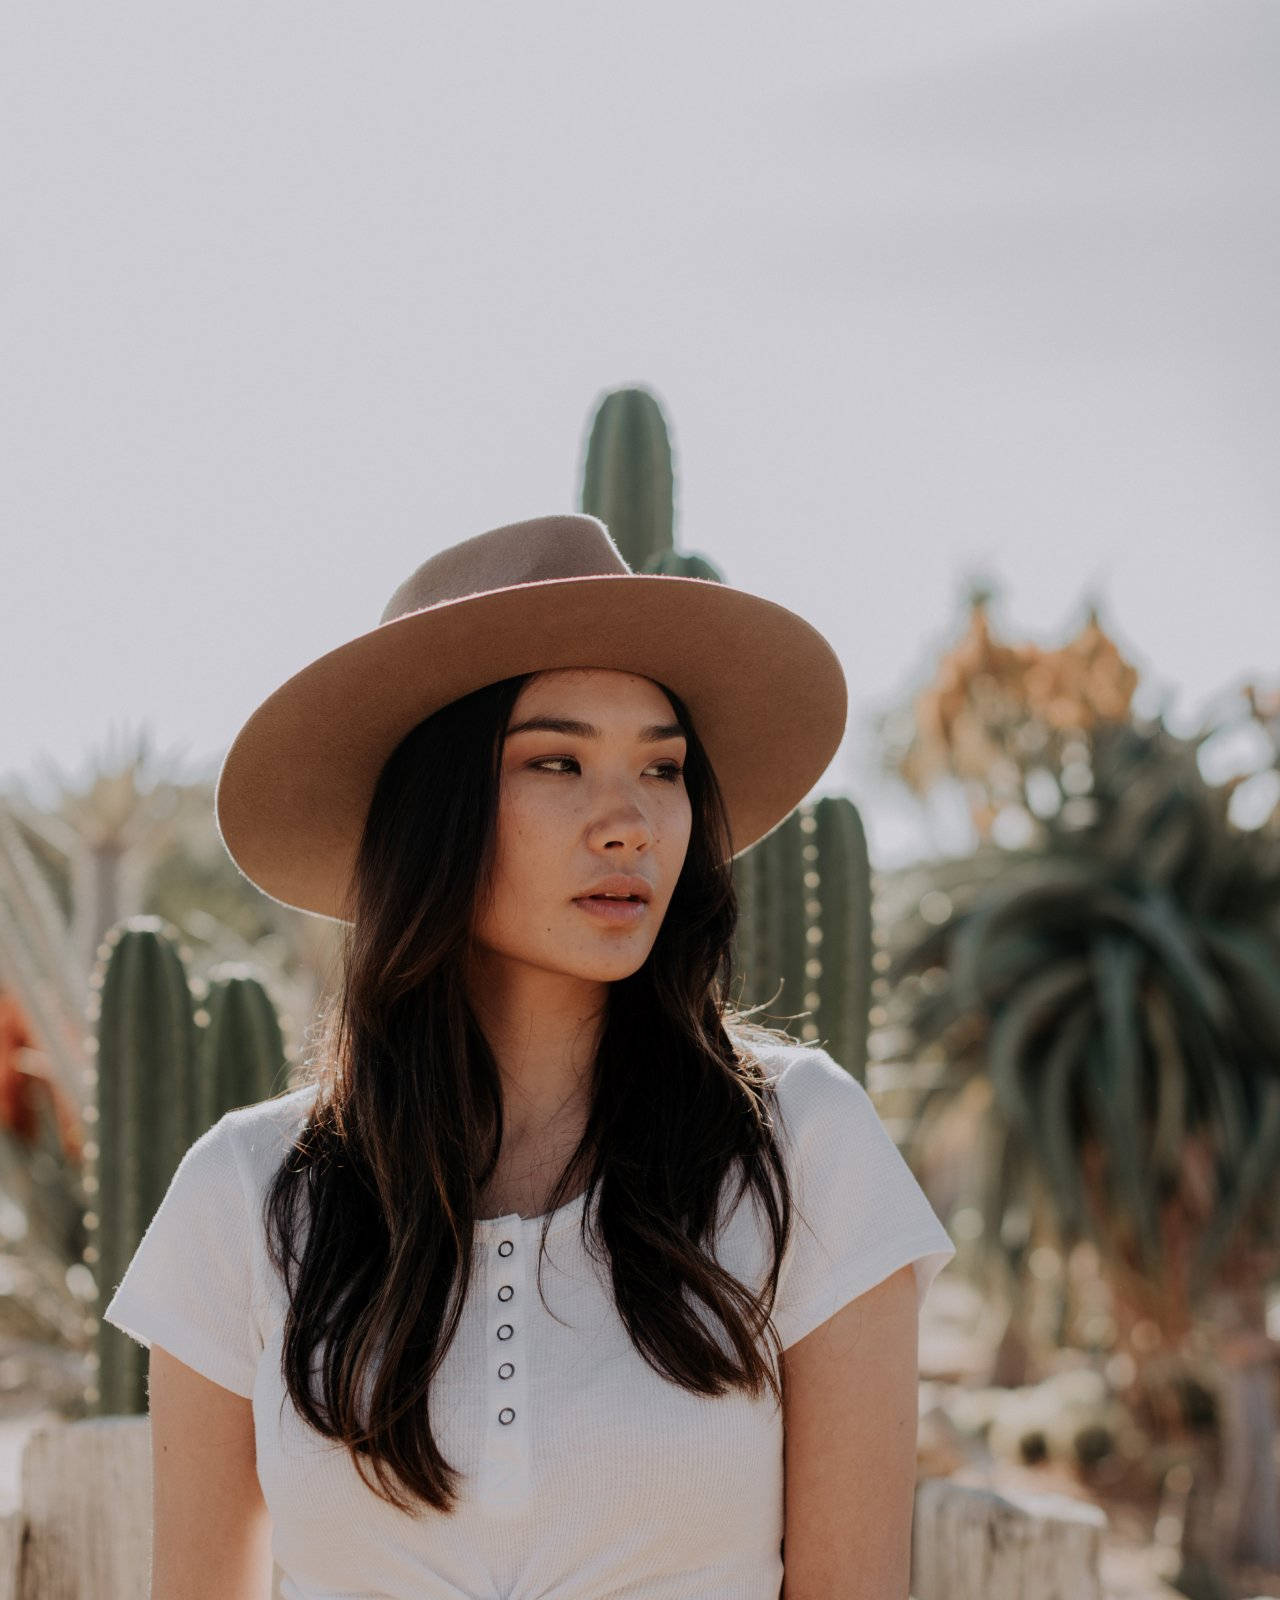 A woman stands in the desert wearing a wool hat.